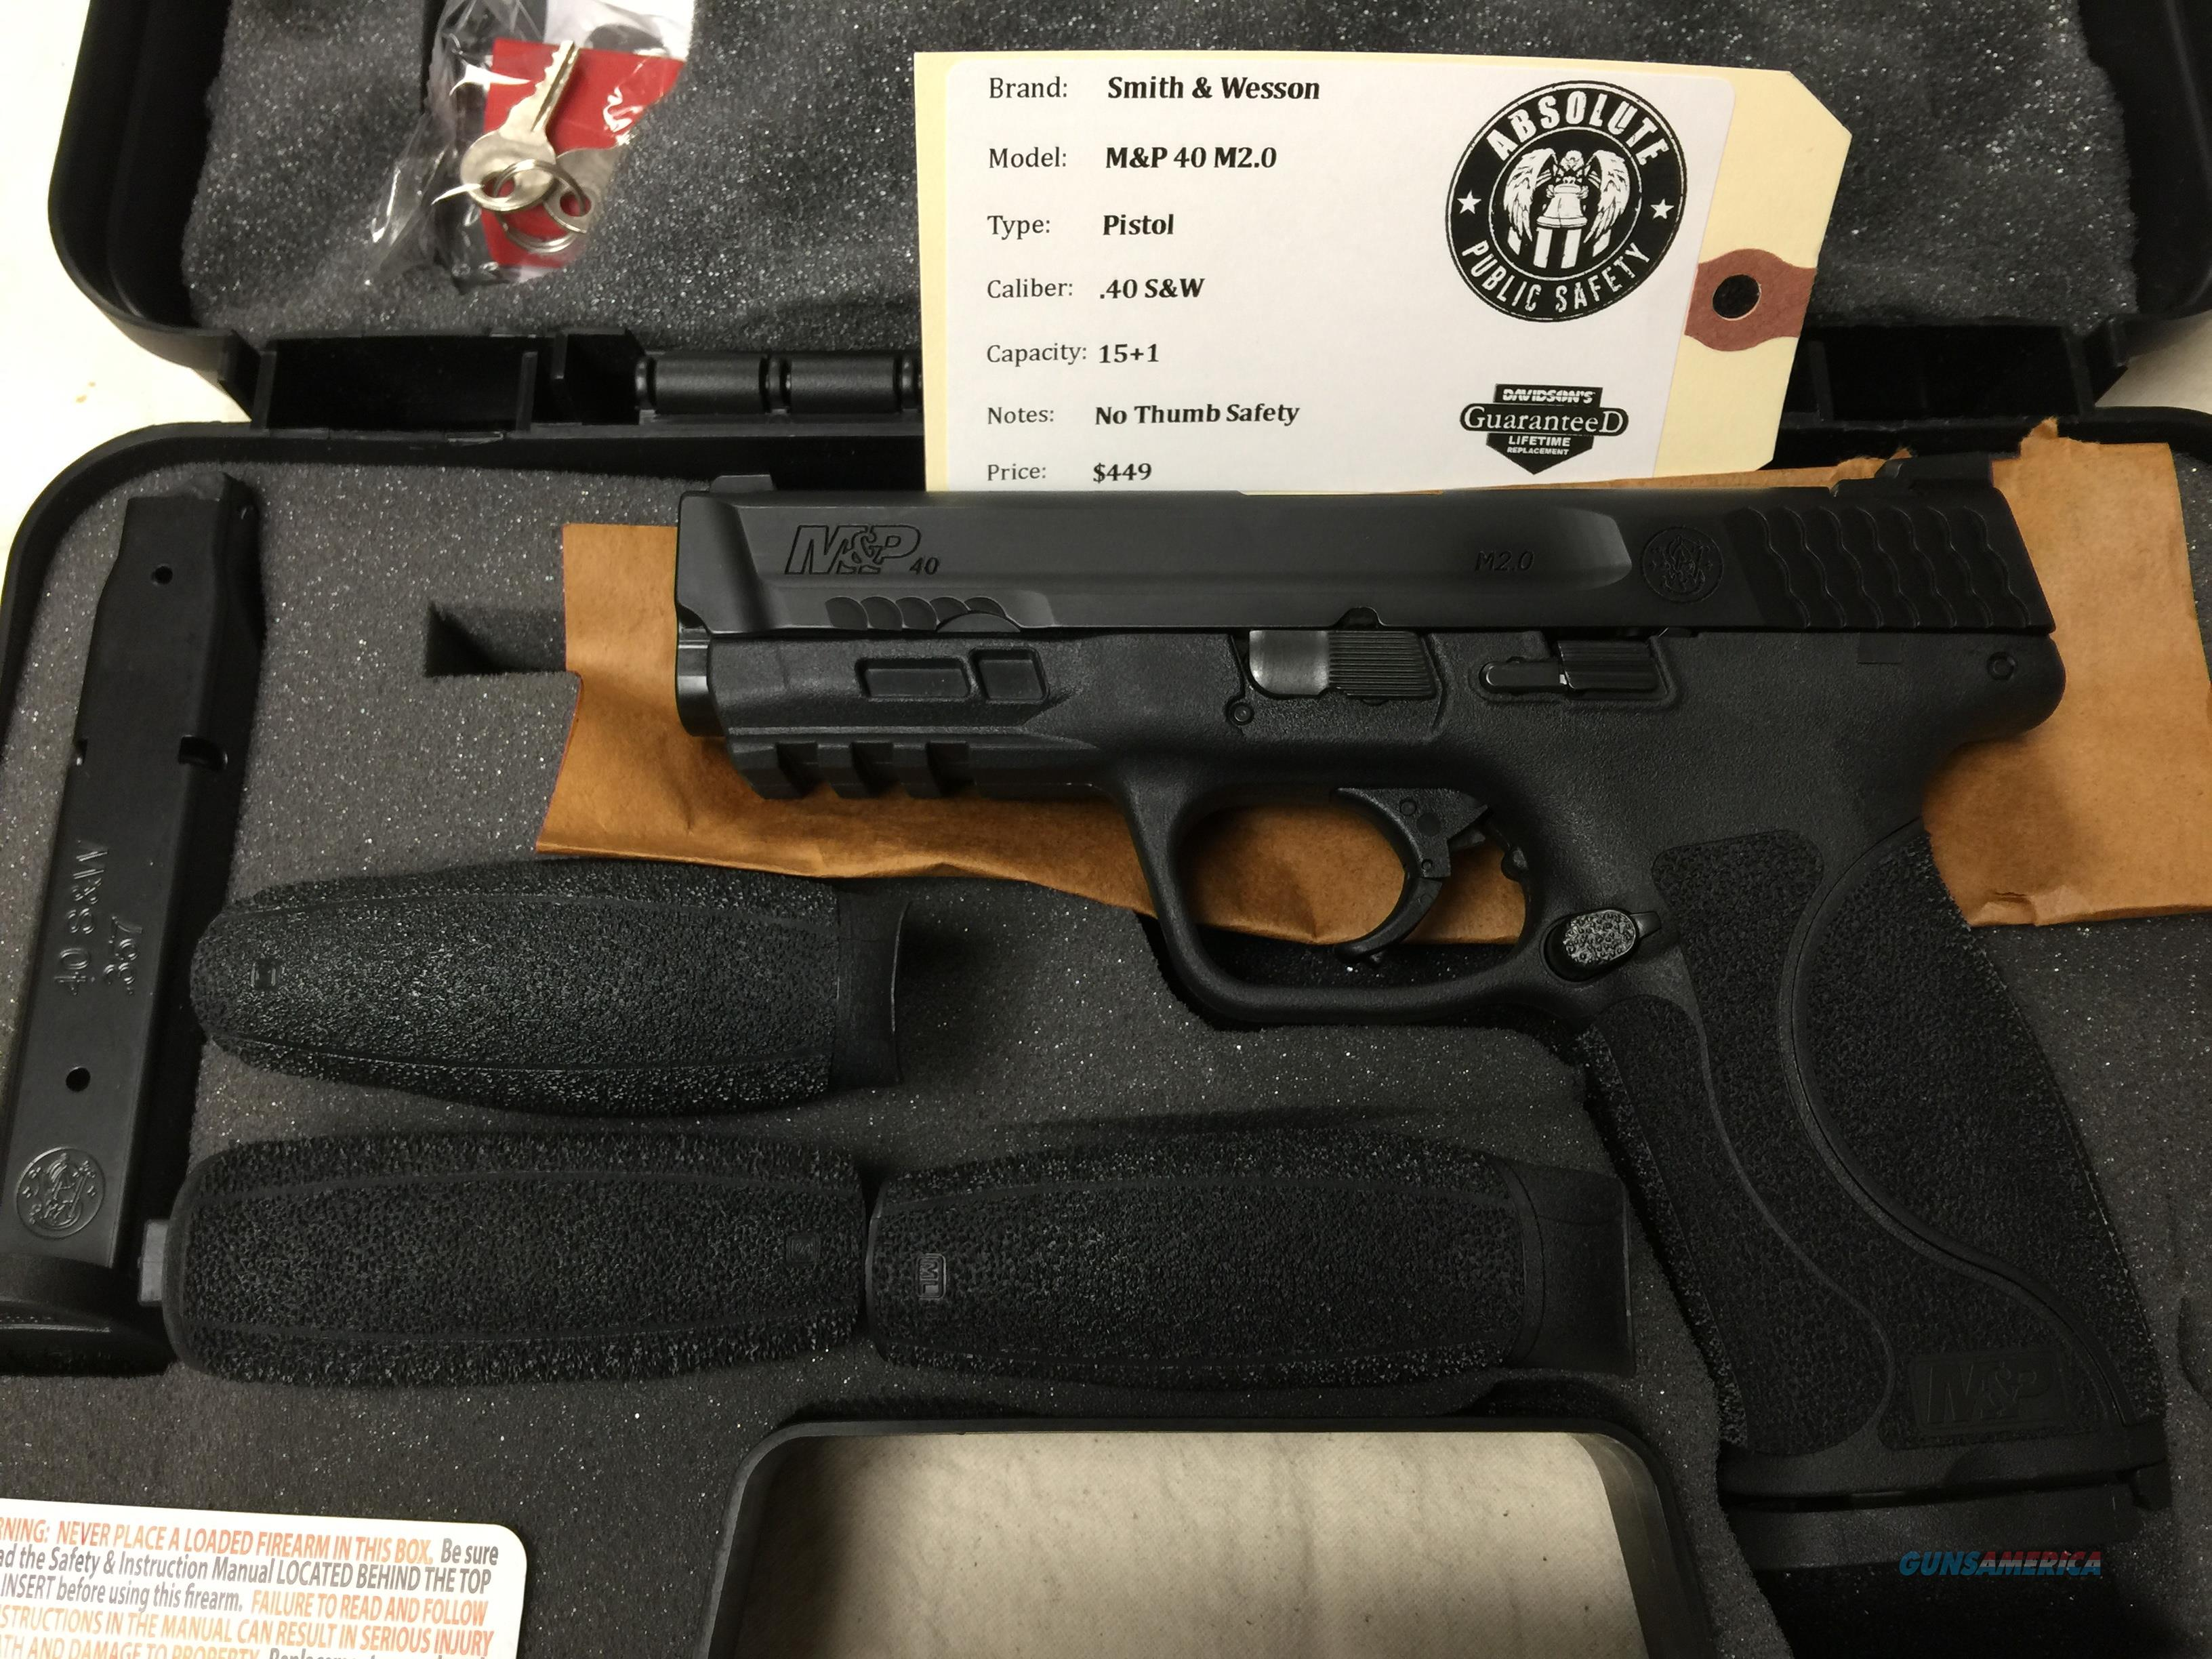 Smith & Wesson M&P40 M2.0 40 S&W 15+1 No Thumb Safety 11522 NIB  Guns > Pistols > Smith & Wesson Pistols - Autos > Polymer Frame